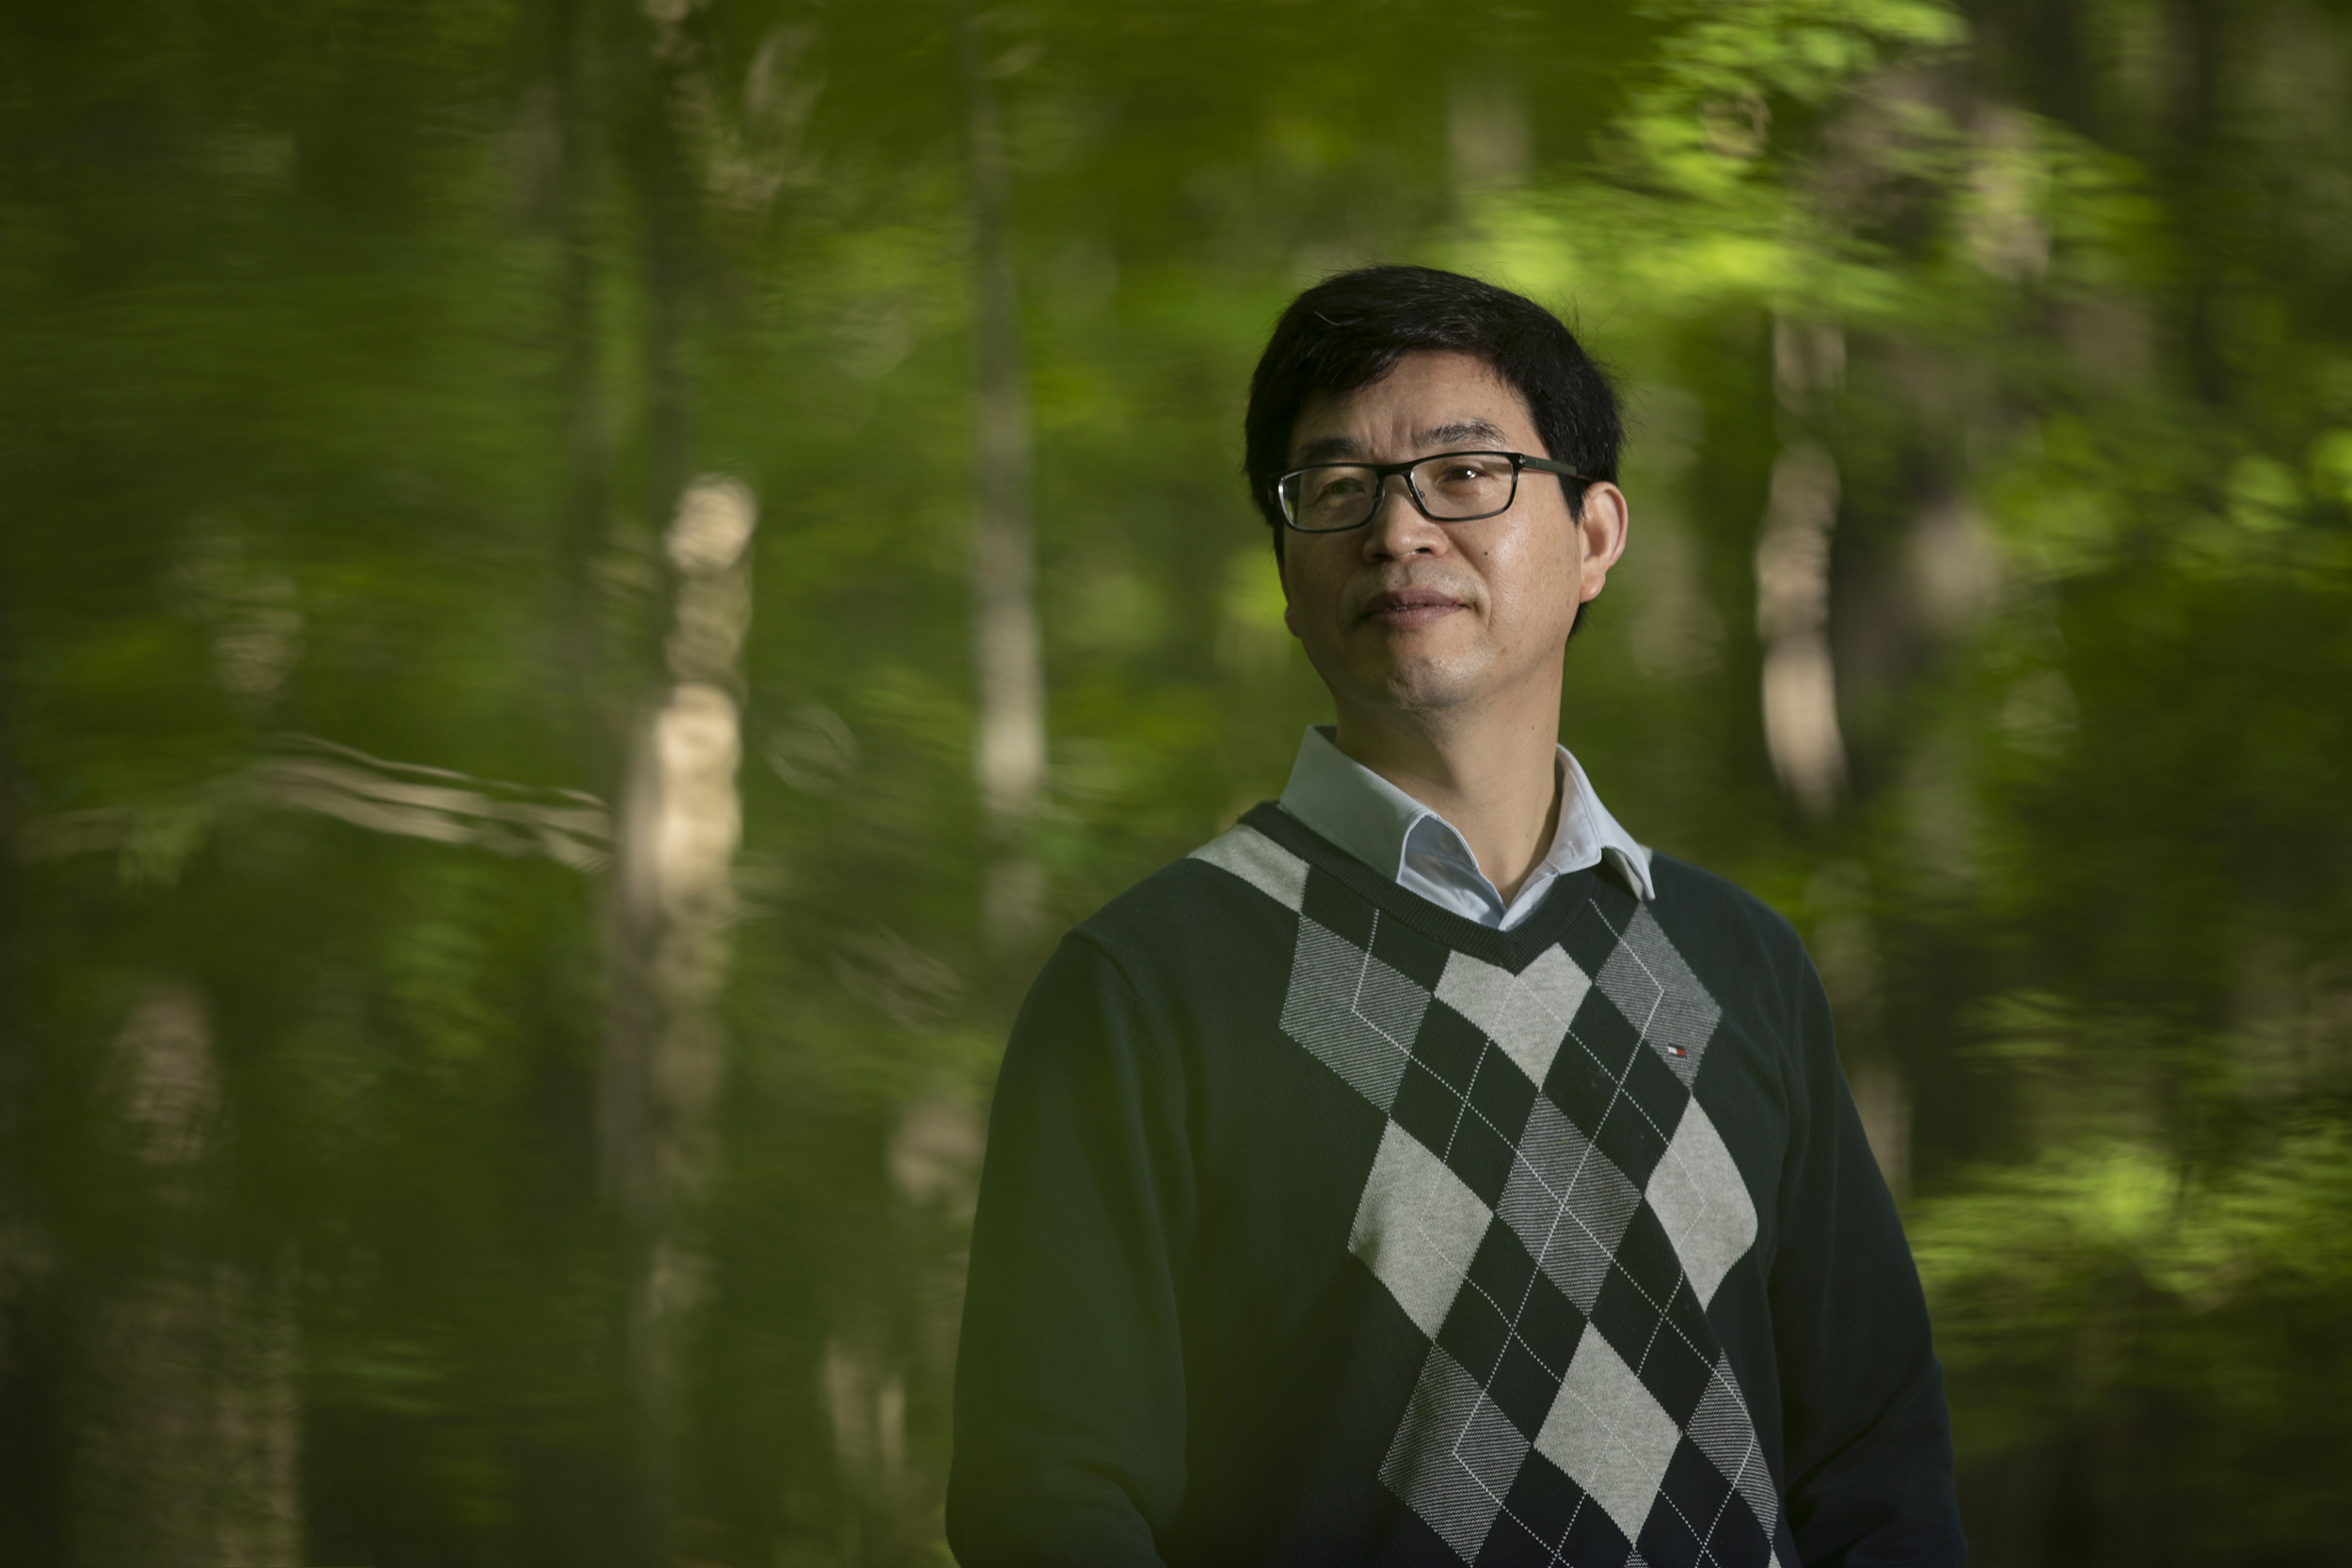 Conghe Song stands for a portrait in a forest.